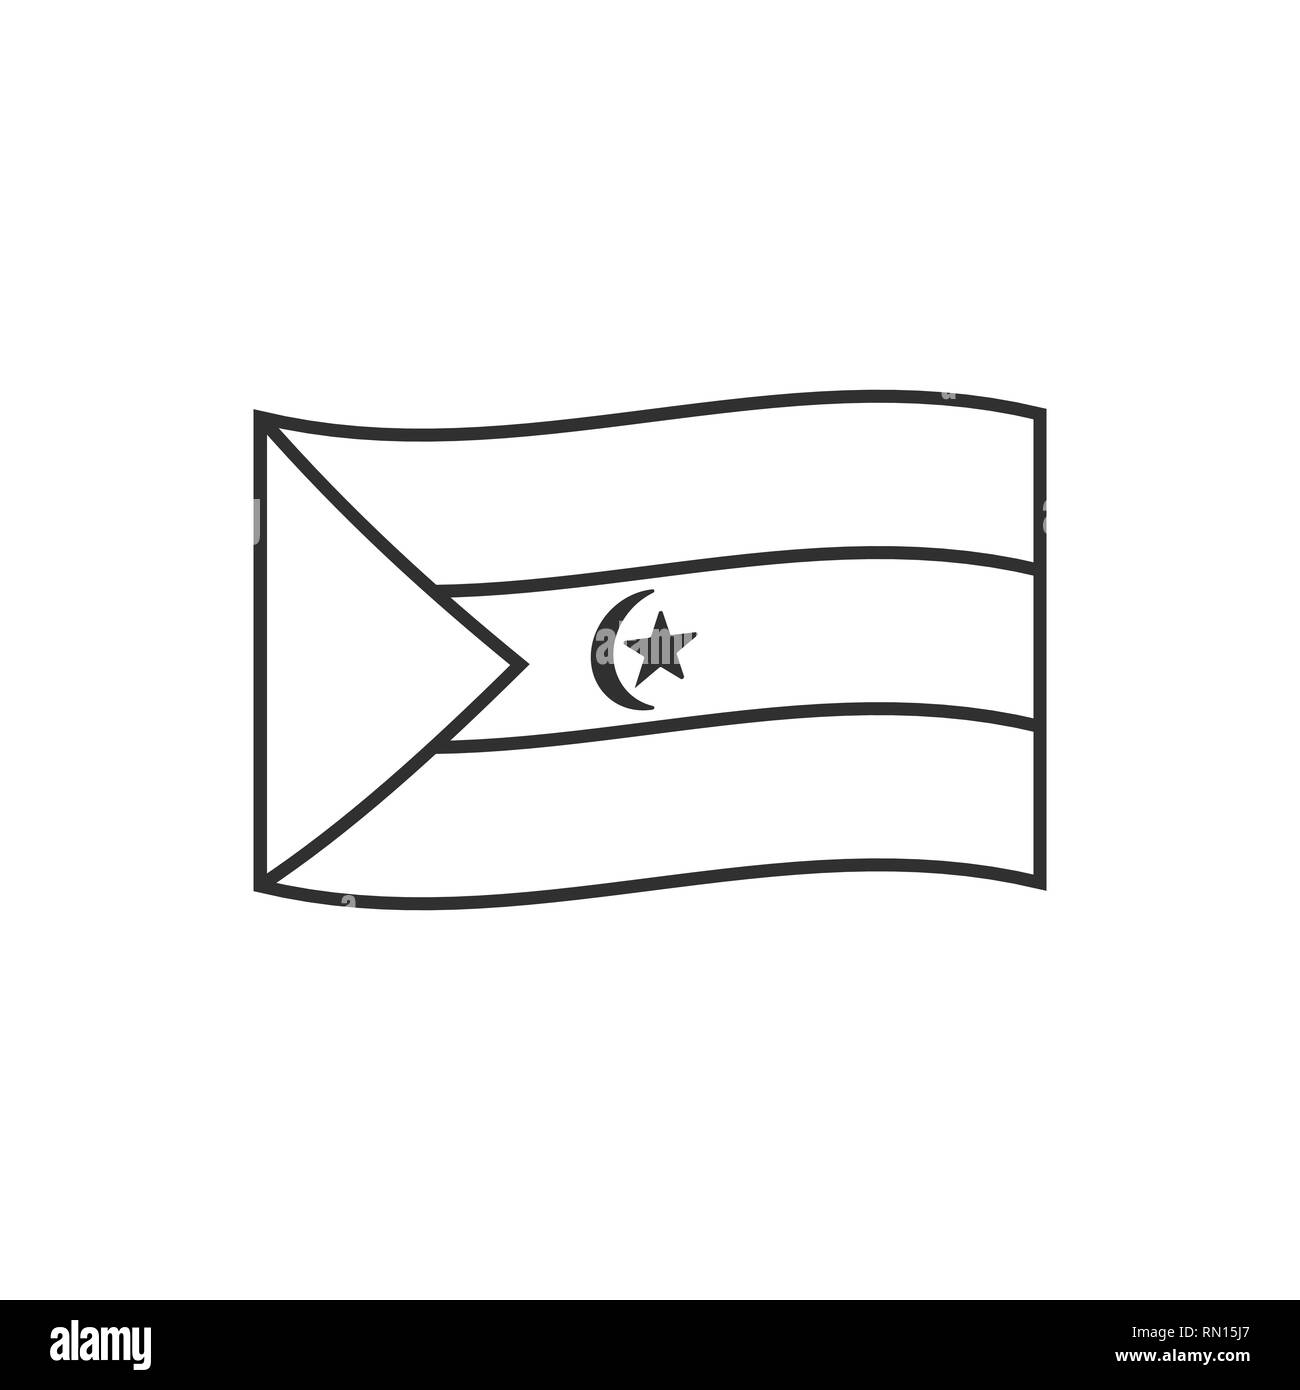 Western Sahara flag icon in black outline flat design. Independence day or National day holiday concept. - Stock Image